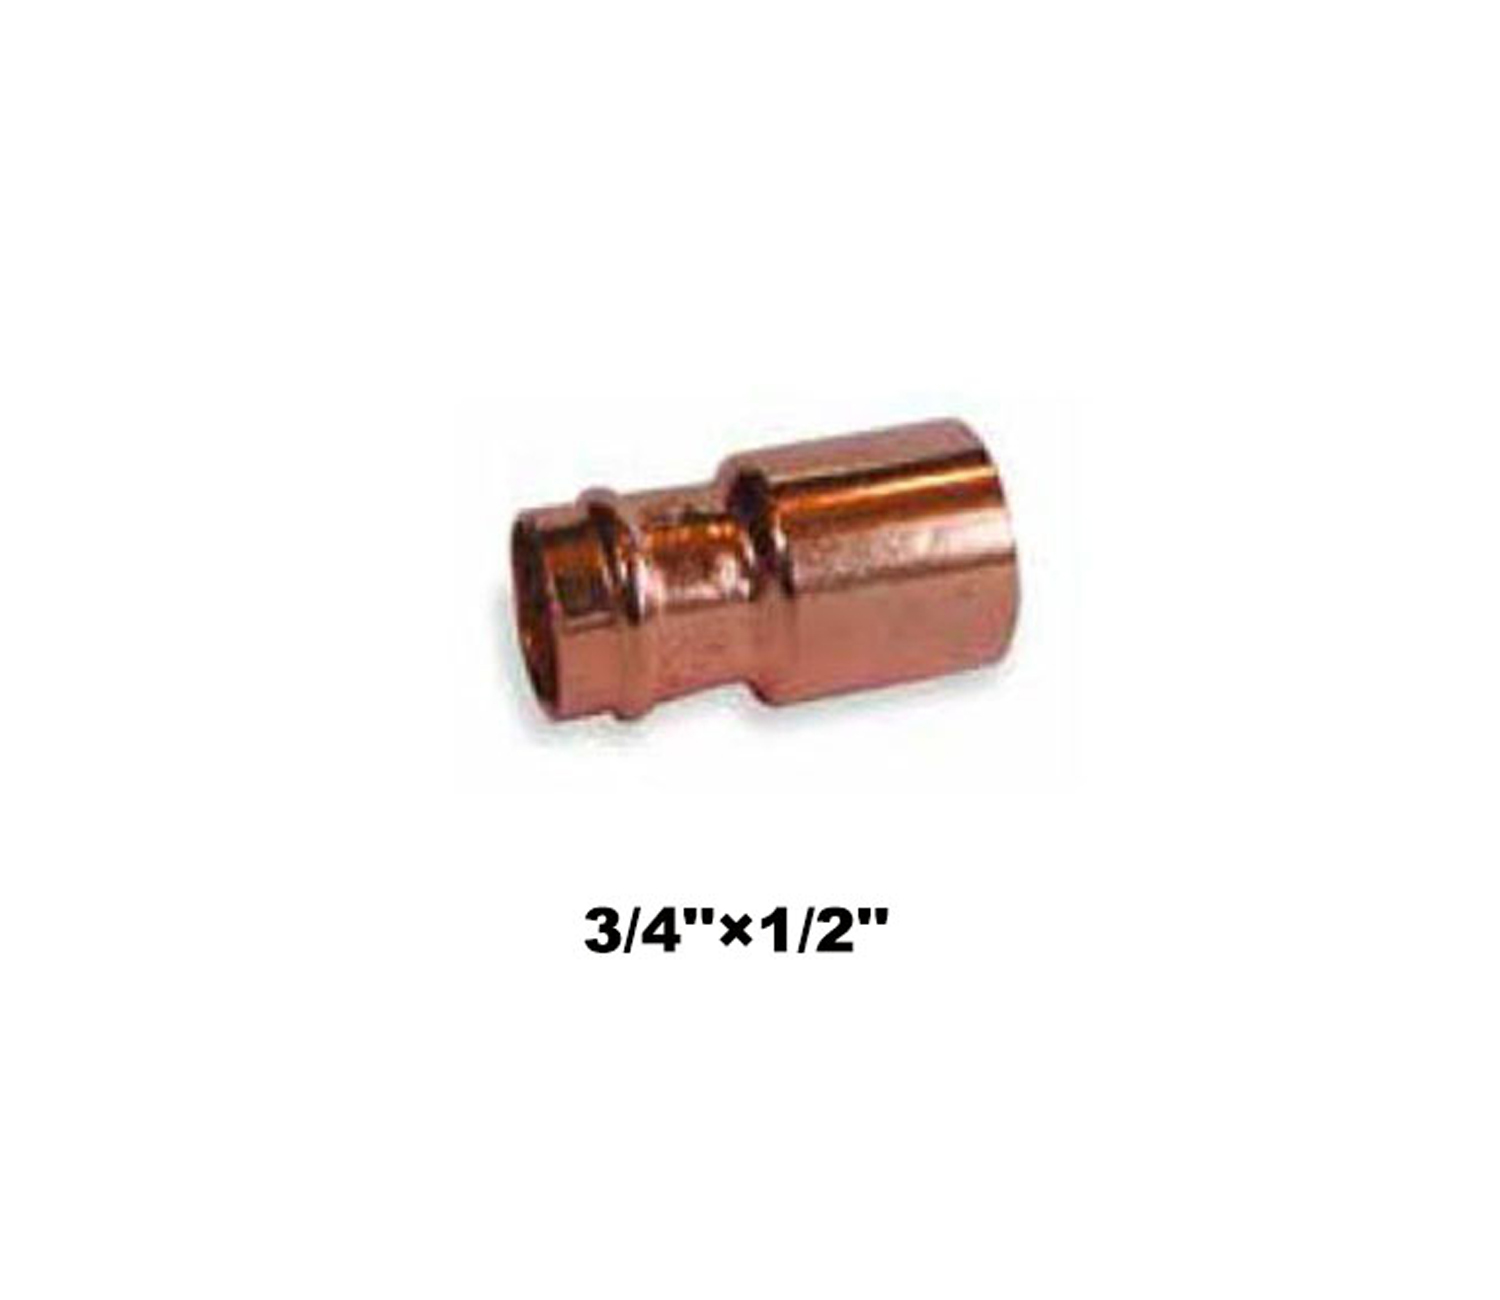 "Compression Fitting Reducer 3/4""×1/2"" (19021)"